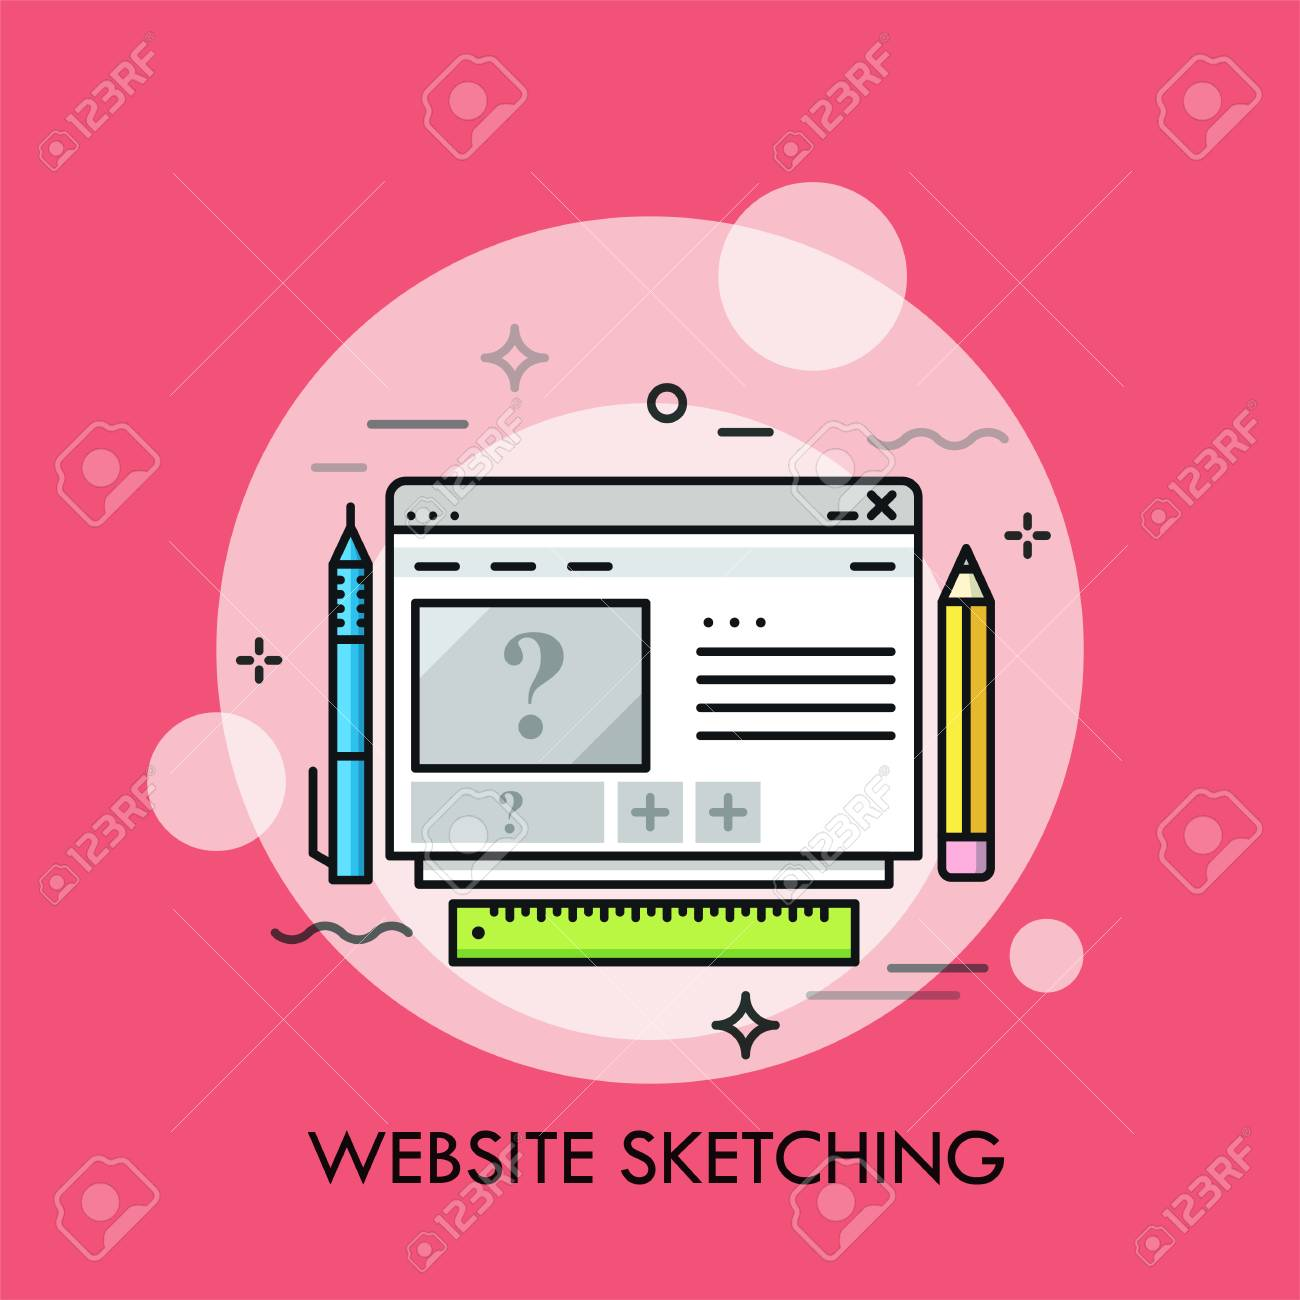 Browser Window Pen Pencil And Ruler Concept Of Web Design Royalty Free Cliparts Vectors And Stock Illustration Image 95350590